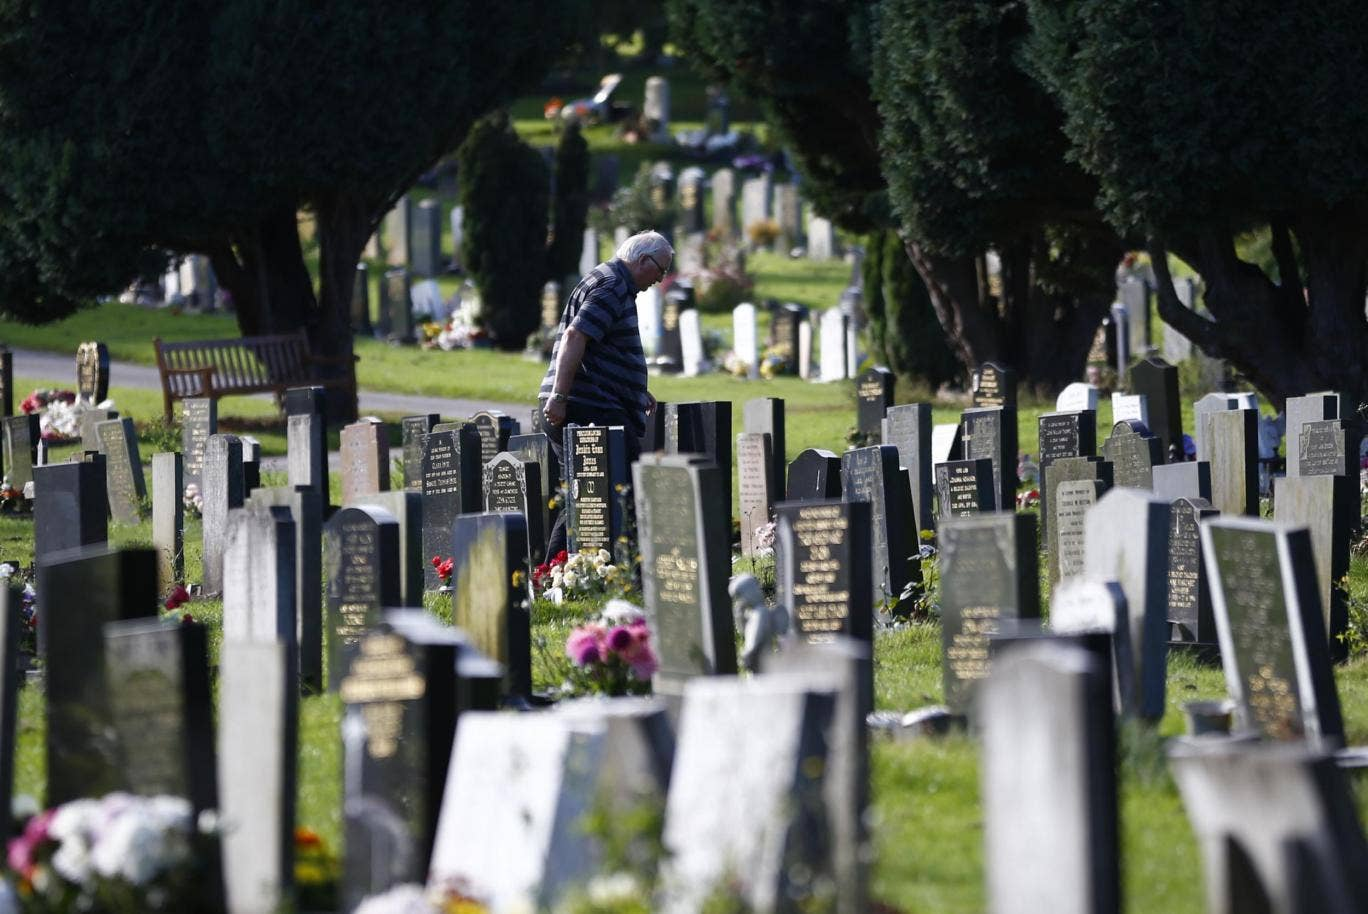 online crowdfunding for funerals rise by third in a year: 'we had to